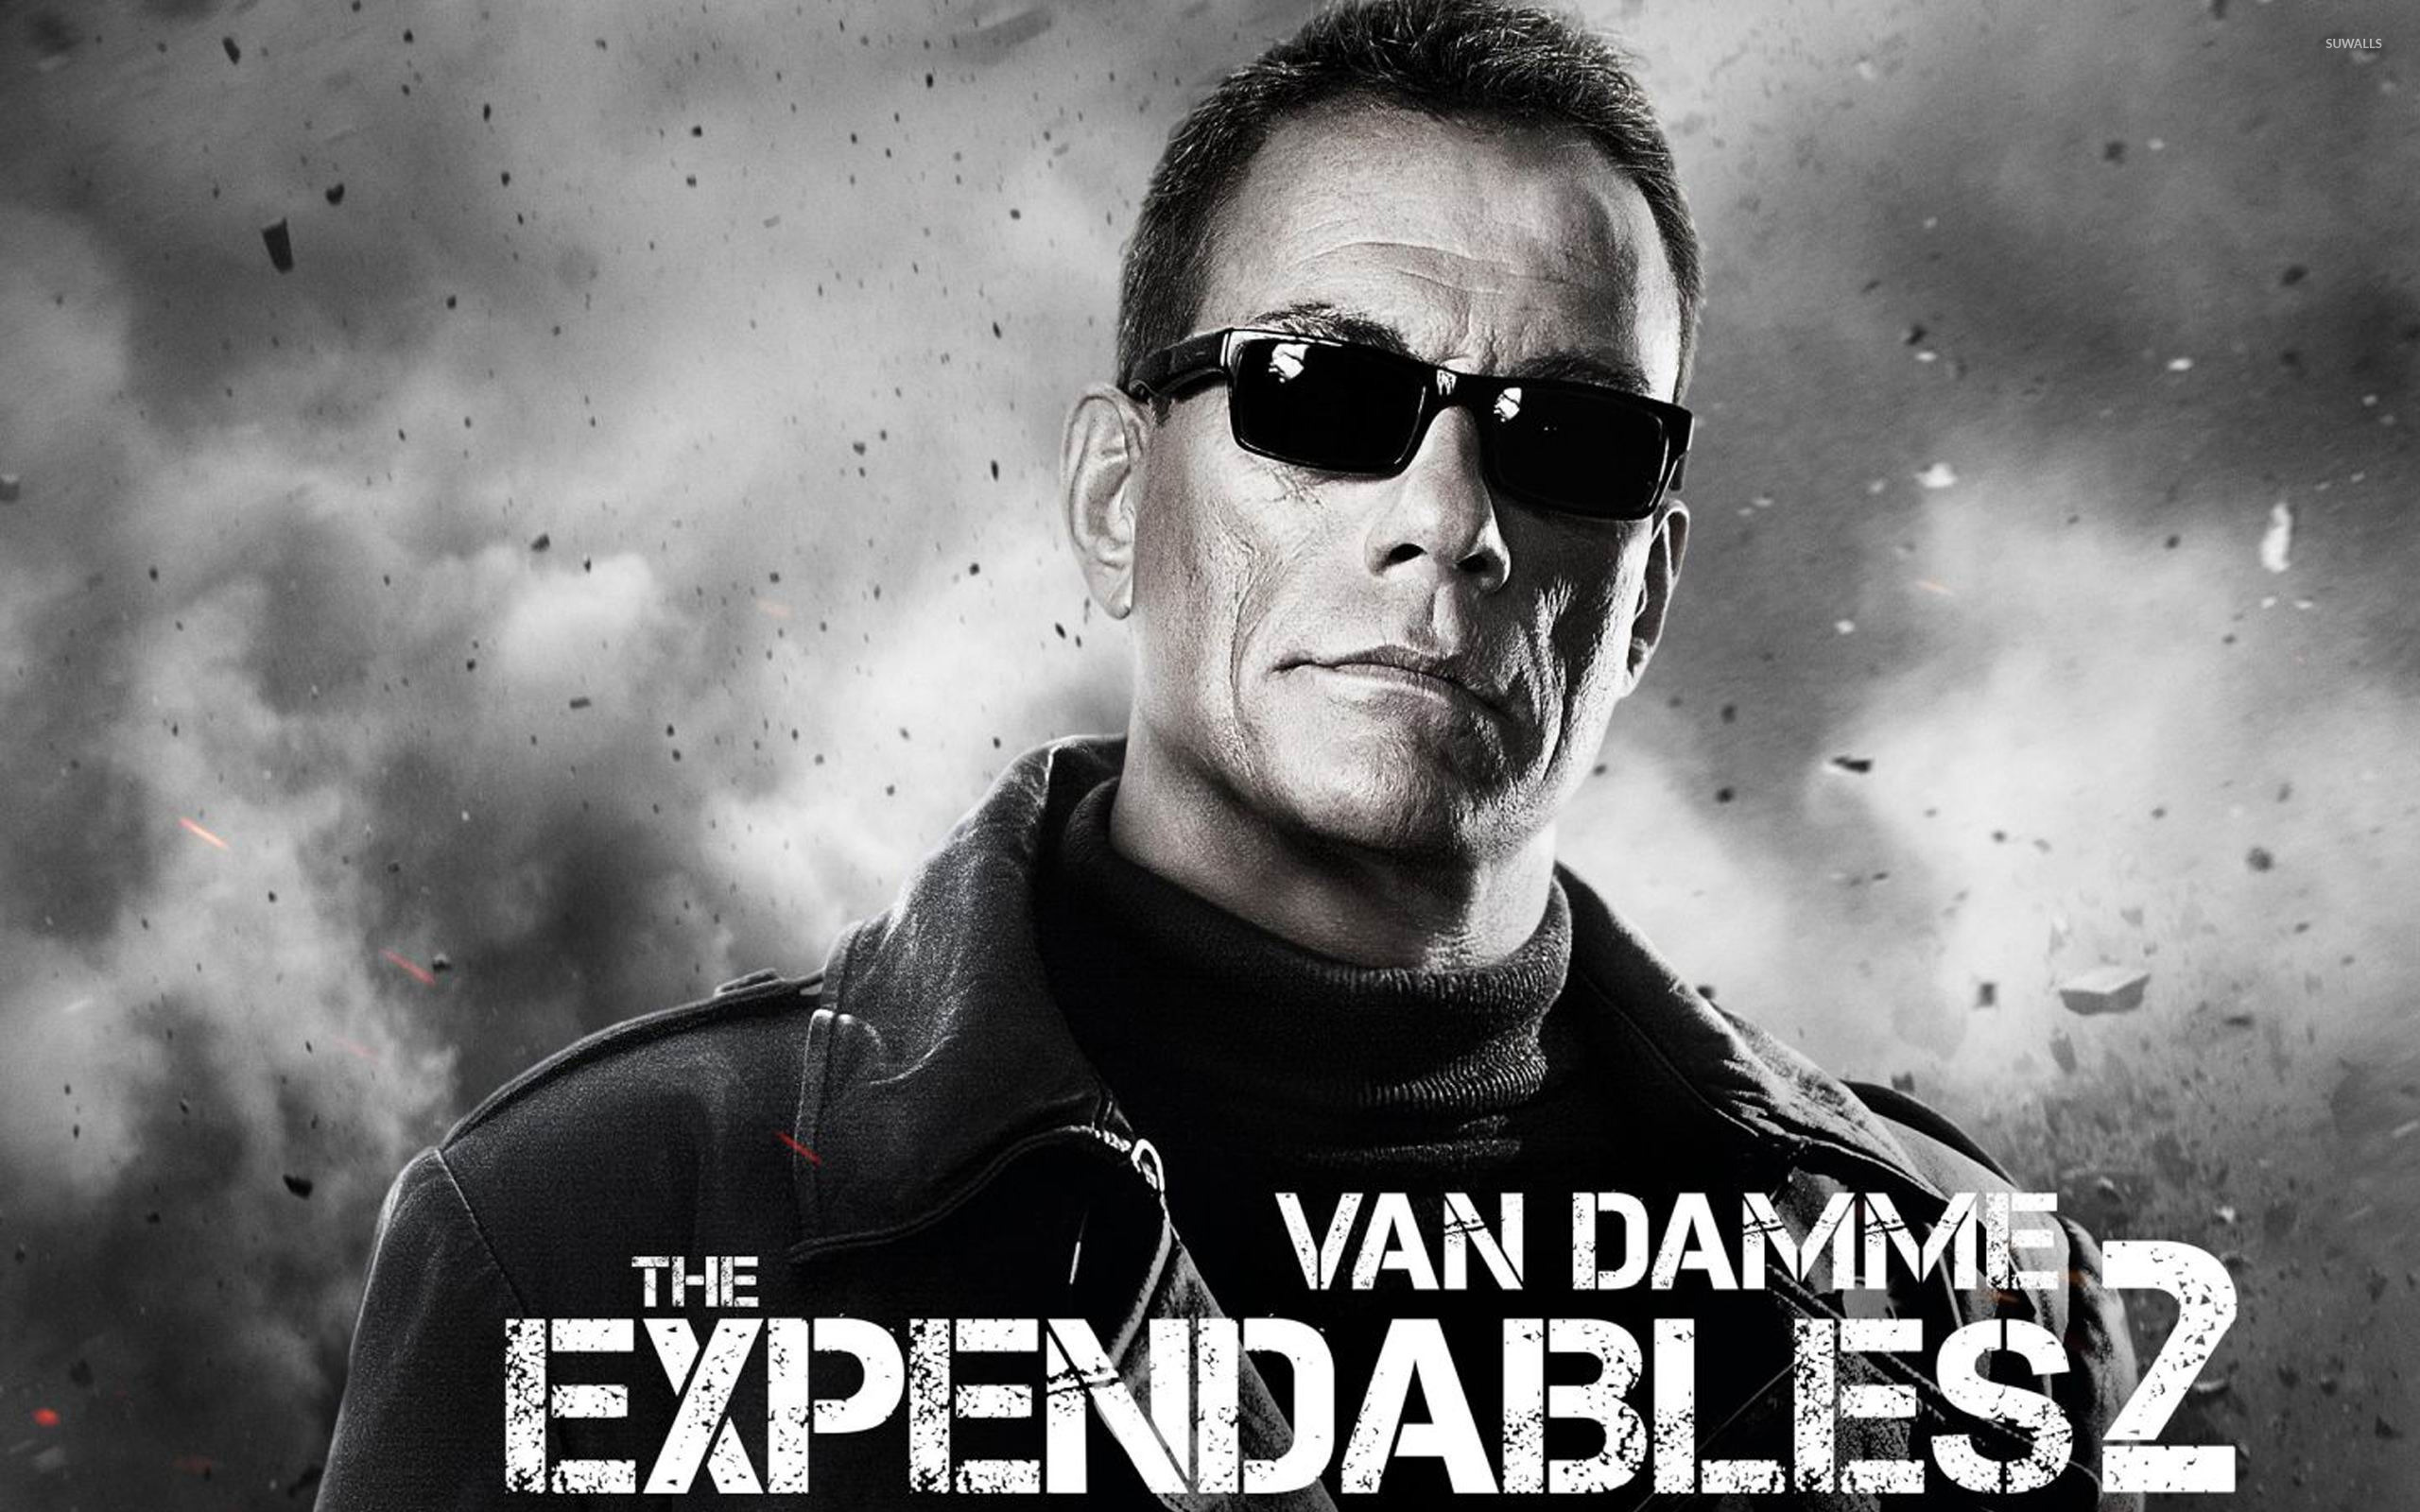 Jean Vilain - The Expendables 2 wallpaper - Movie wallpapers